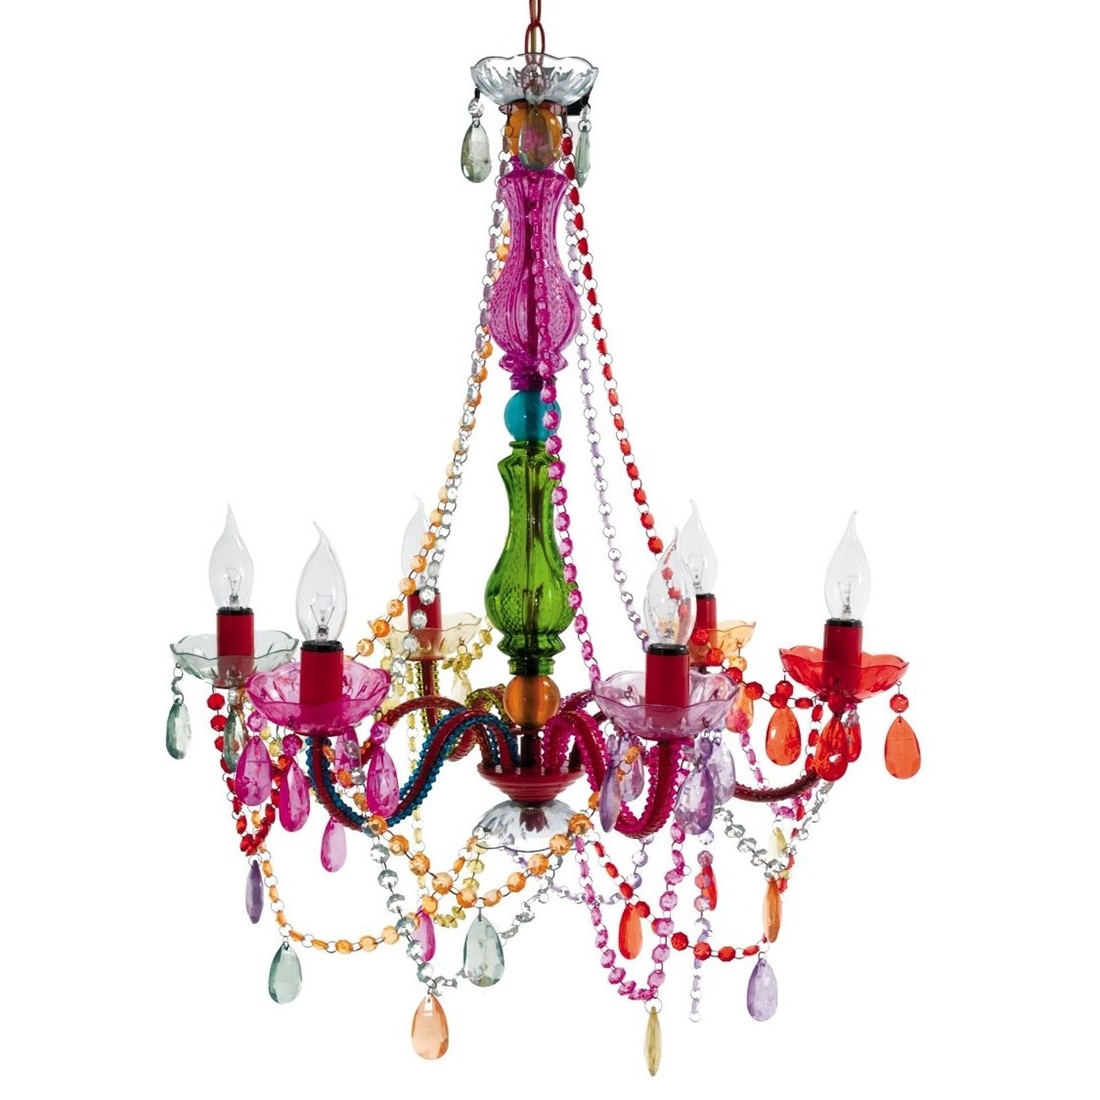 Gypsy Chandelier Adds A Touch Of Outrageous Baroque Class To Any With Regard To Popular Pink Gypsy Chandeliers (View 8 of 20)